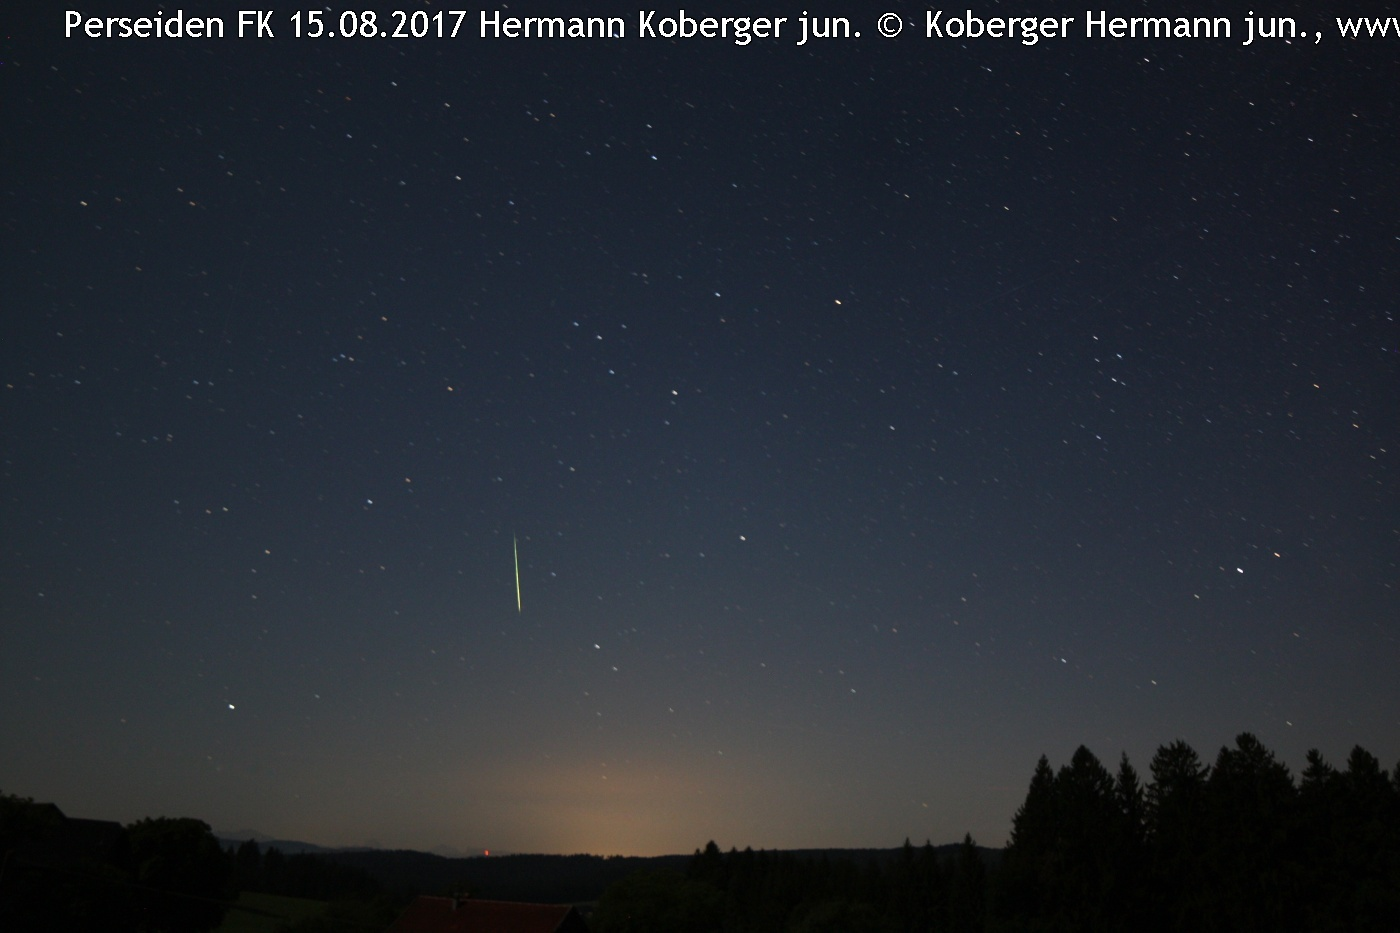 Solar System-Perseid FK 2017 © image-owner(s)